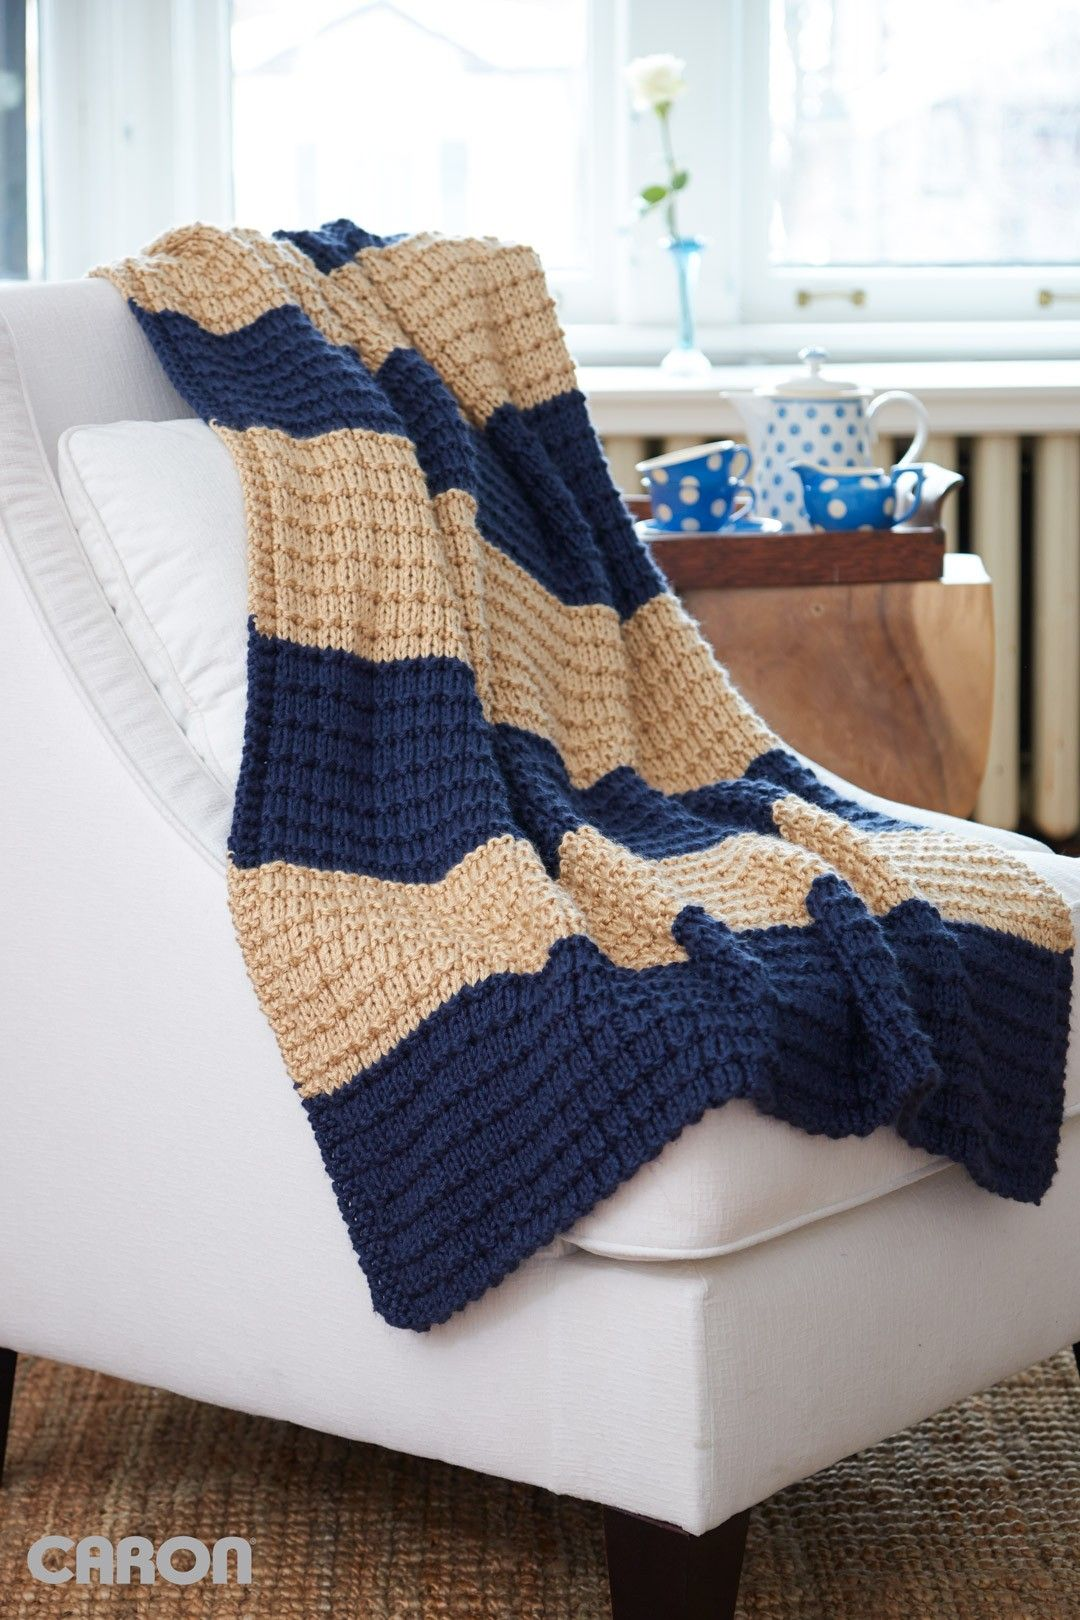 Easy breezy knit afghan other crafts for me pinterest easy breezy knit afghan bankloansurffo Images